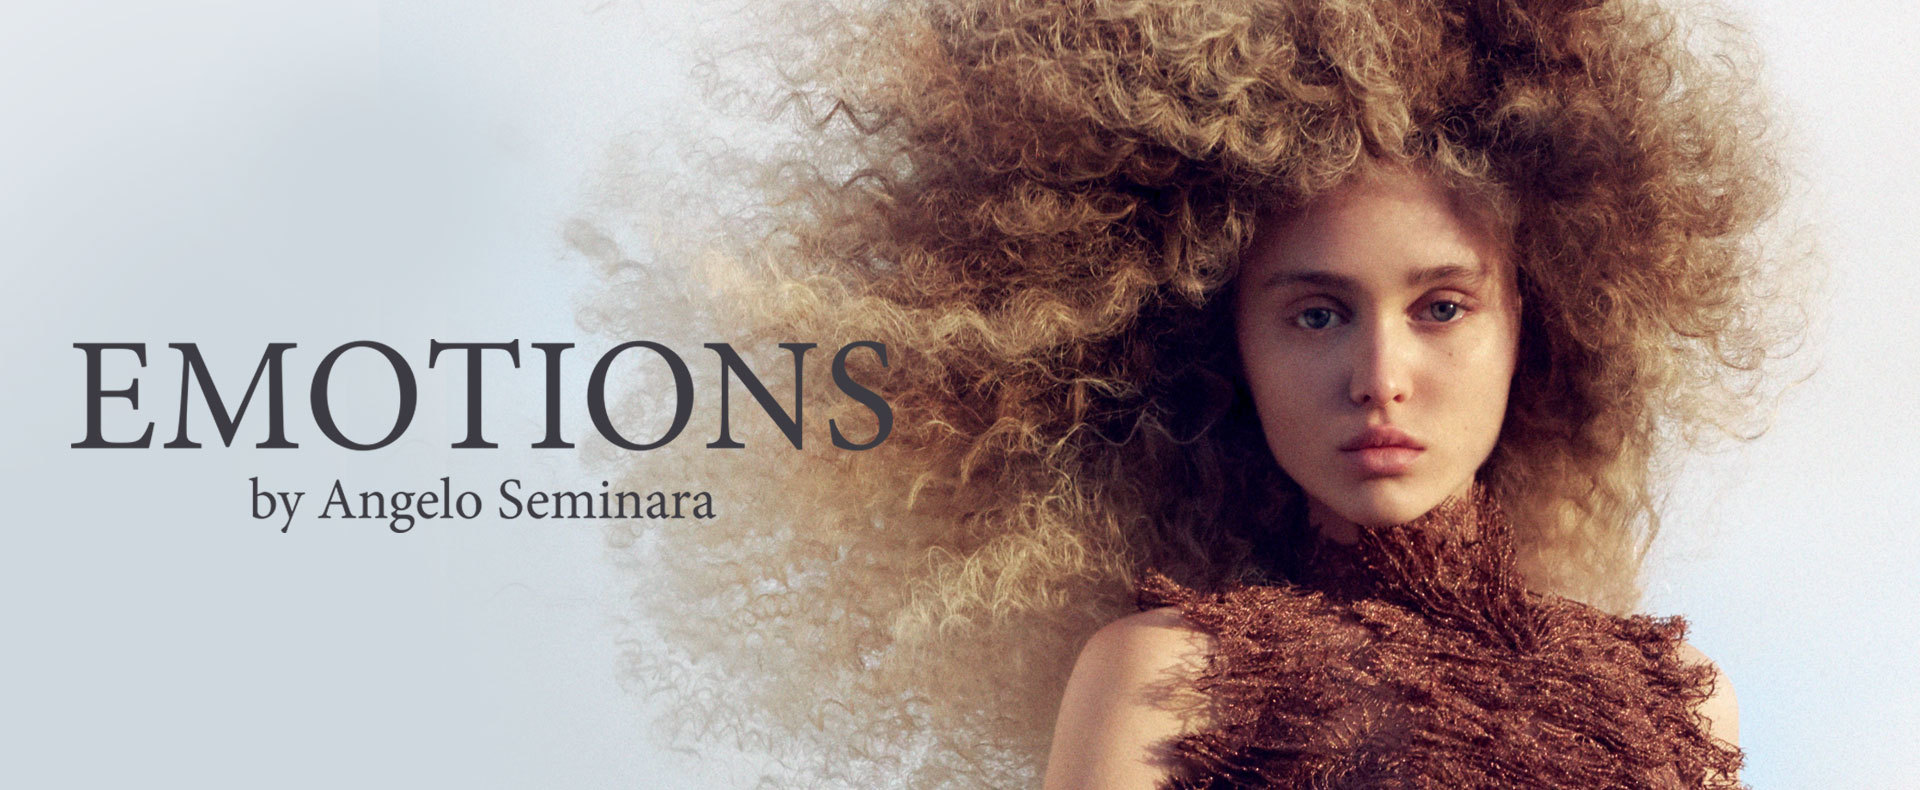 EMOTIONS by Angelo Seminara (© Great Lengths)